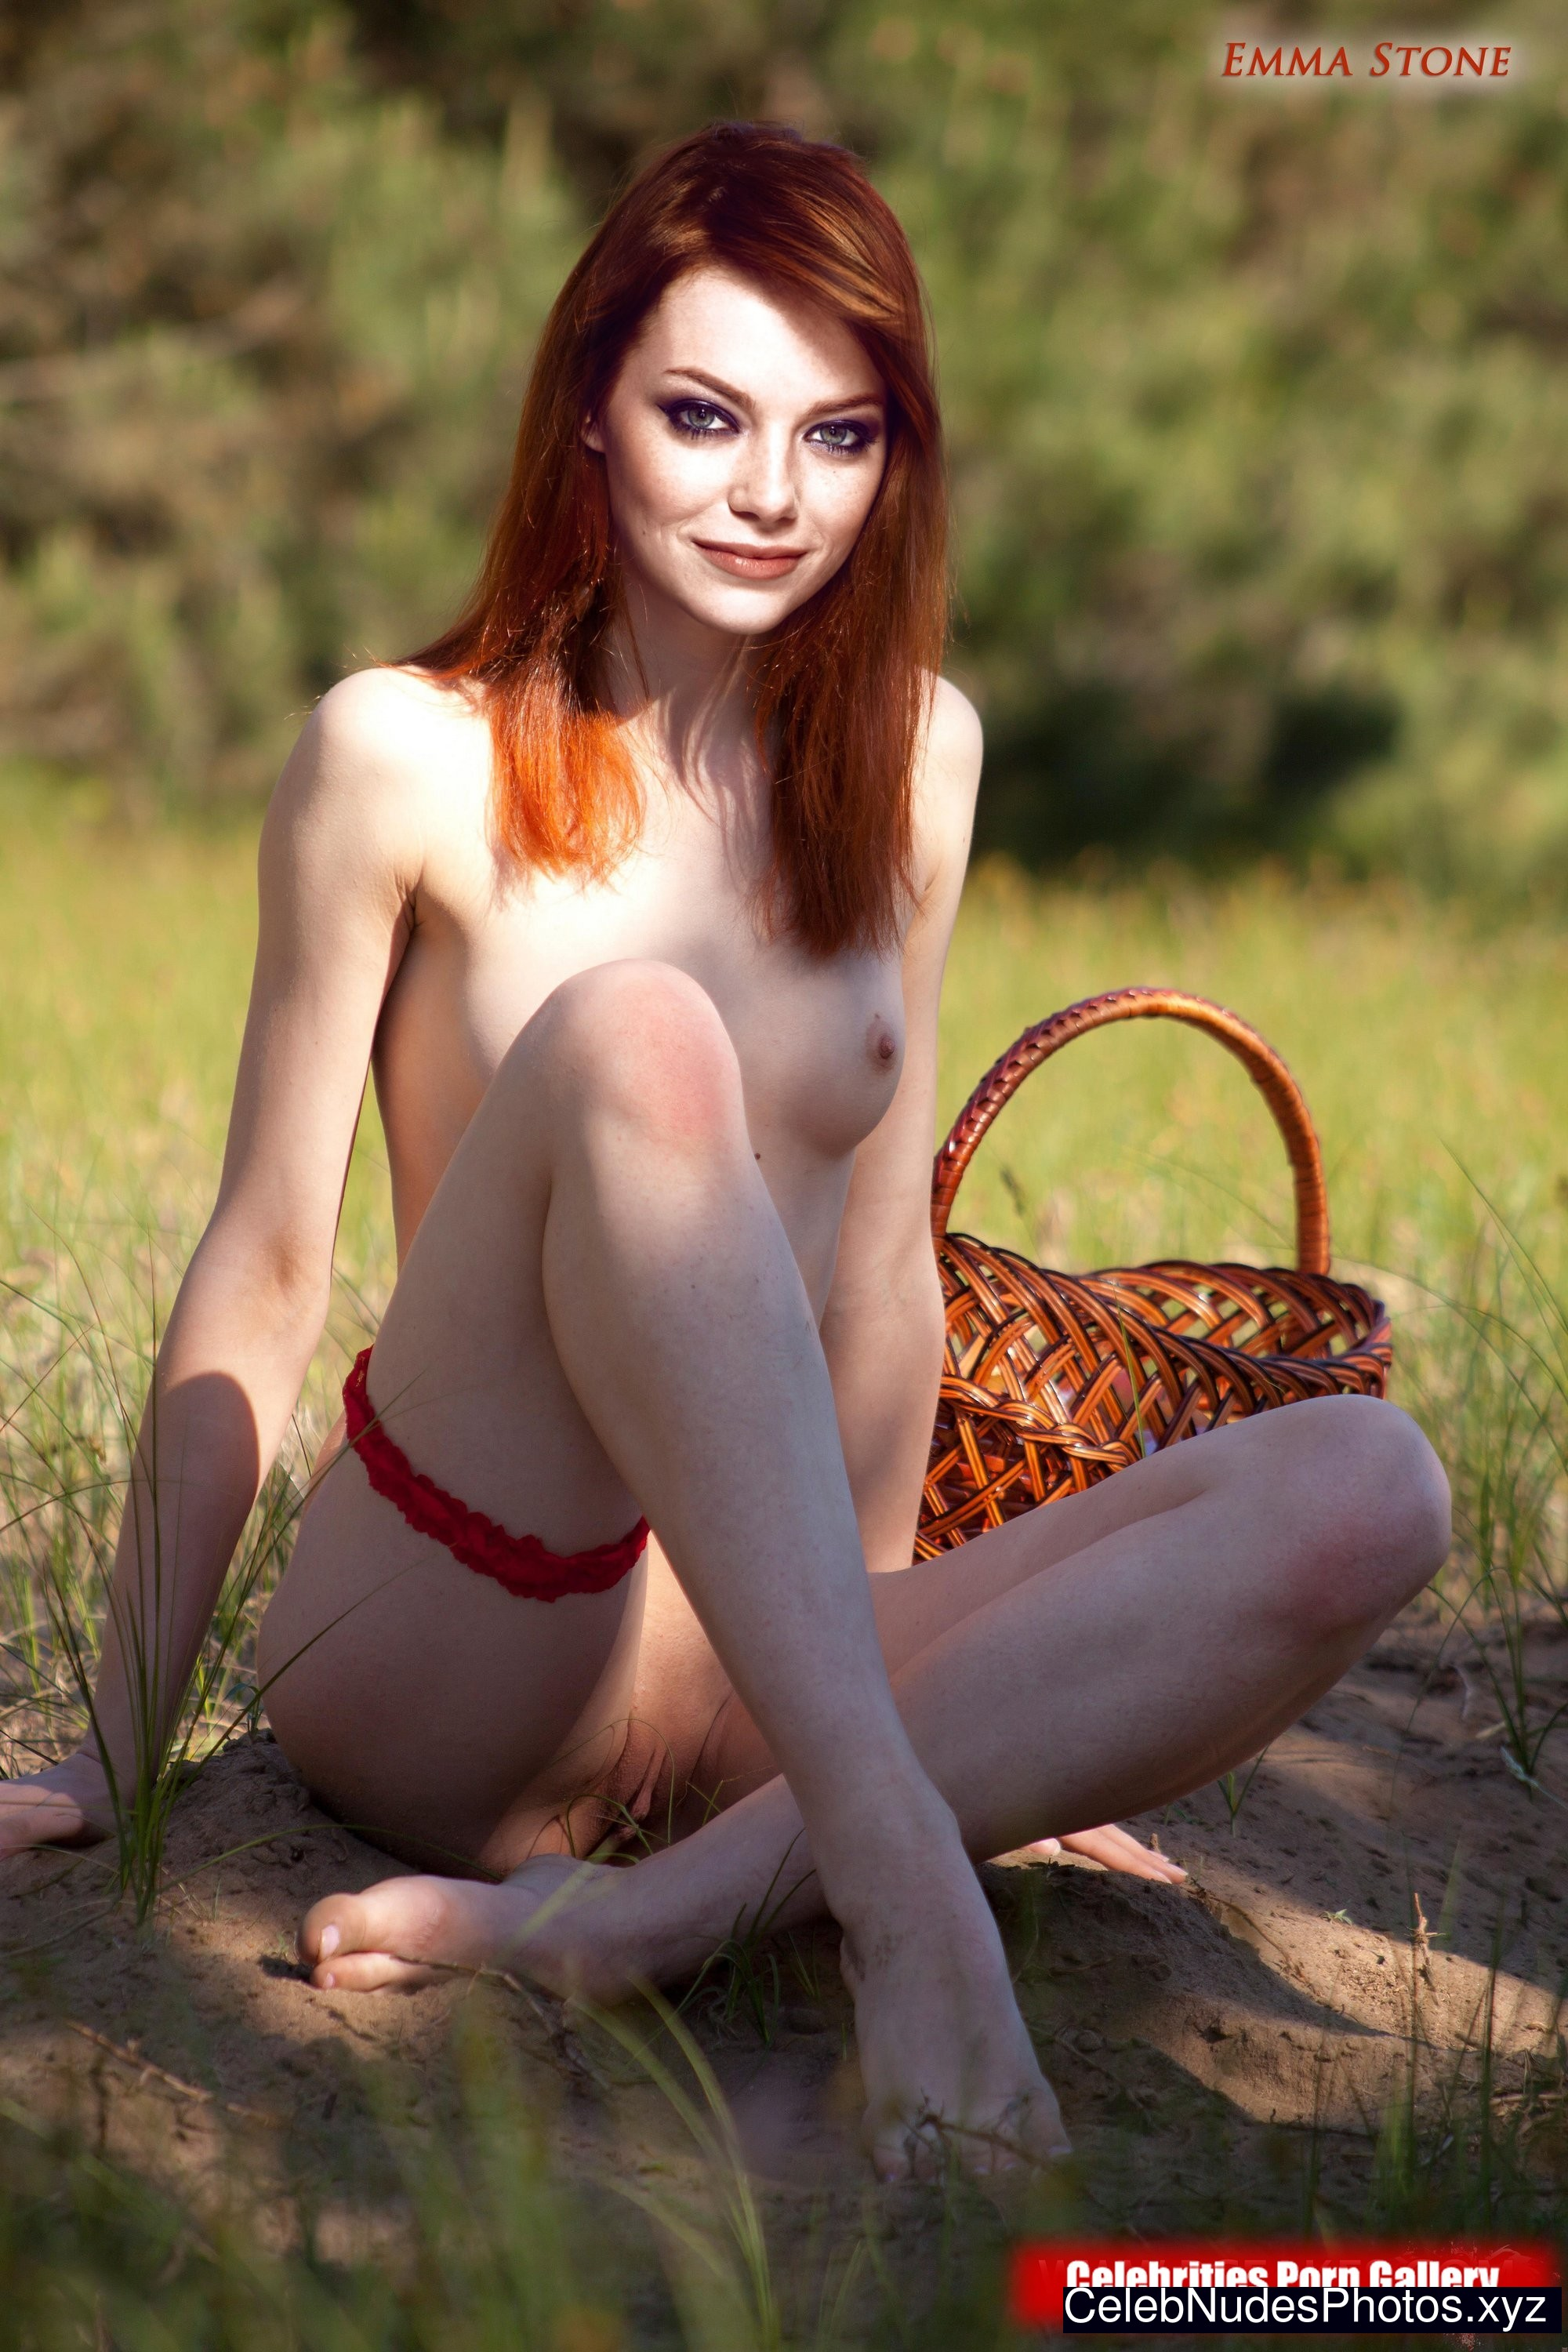 Nude pic of emma stone